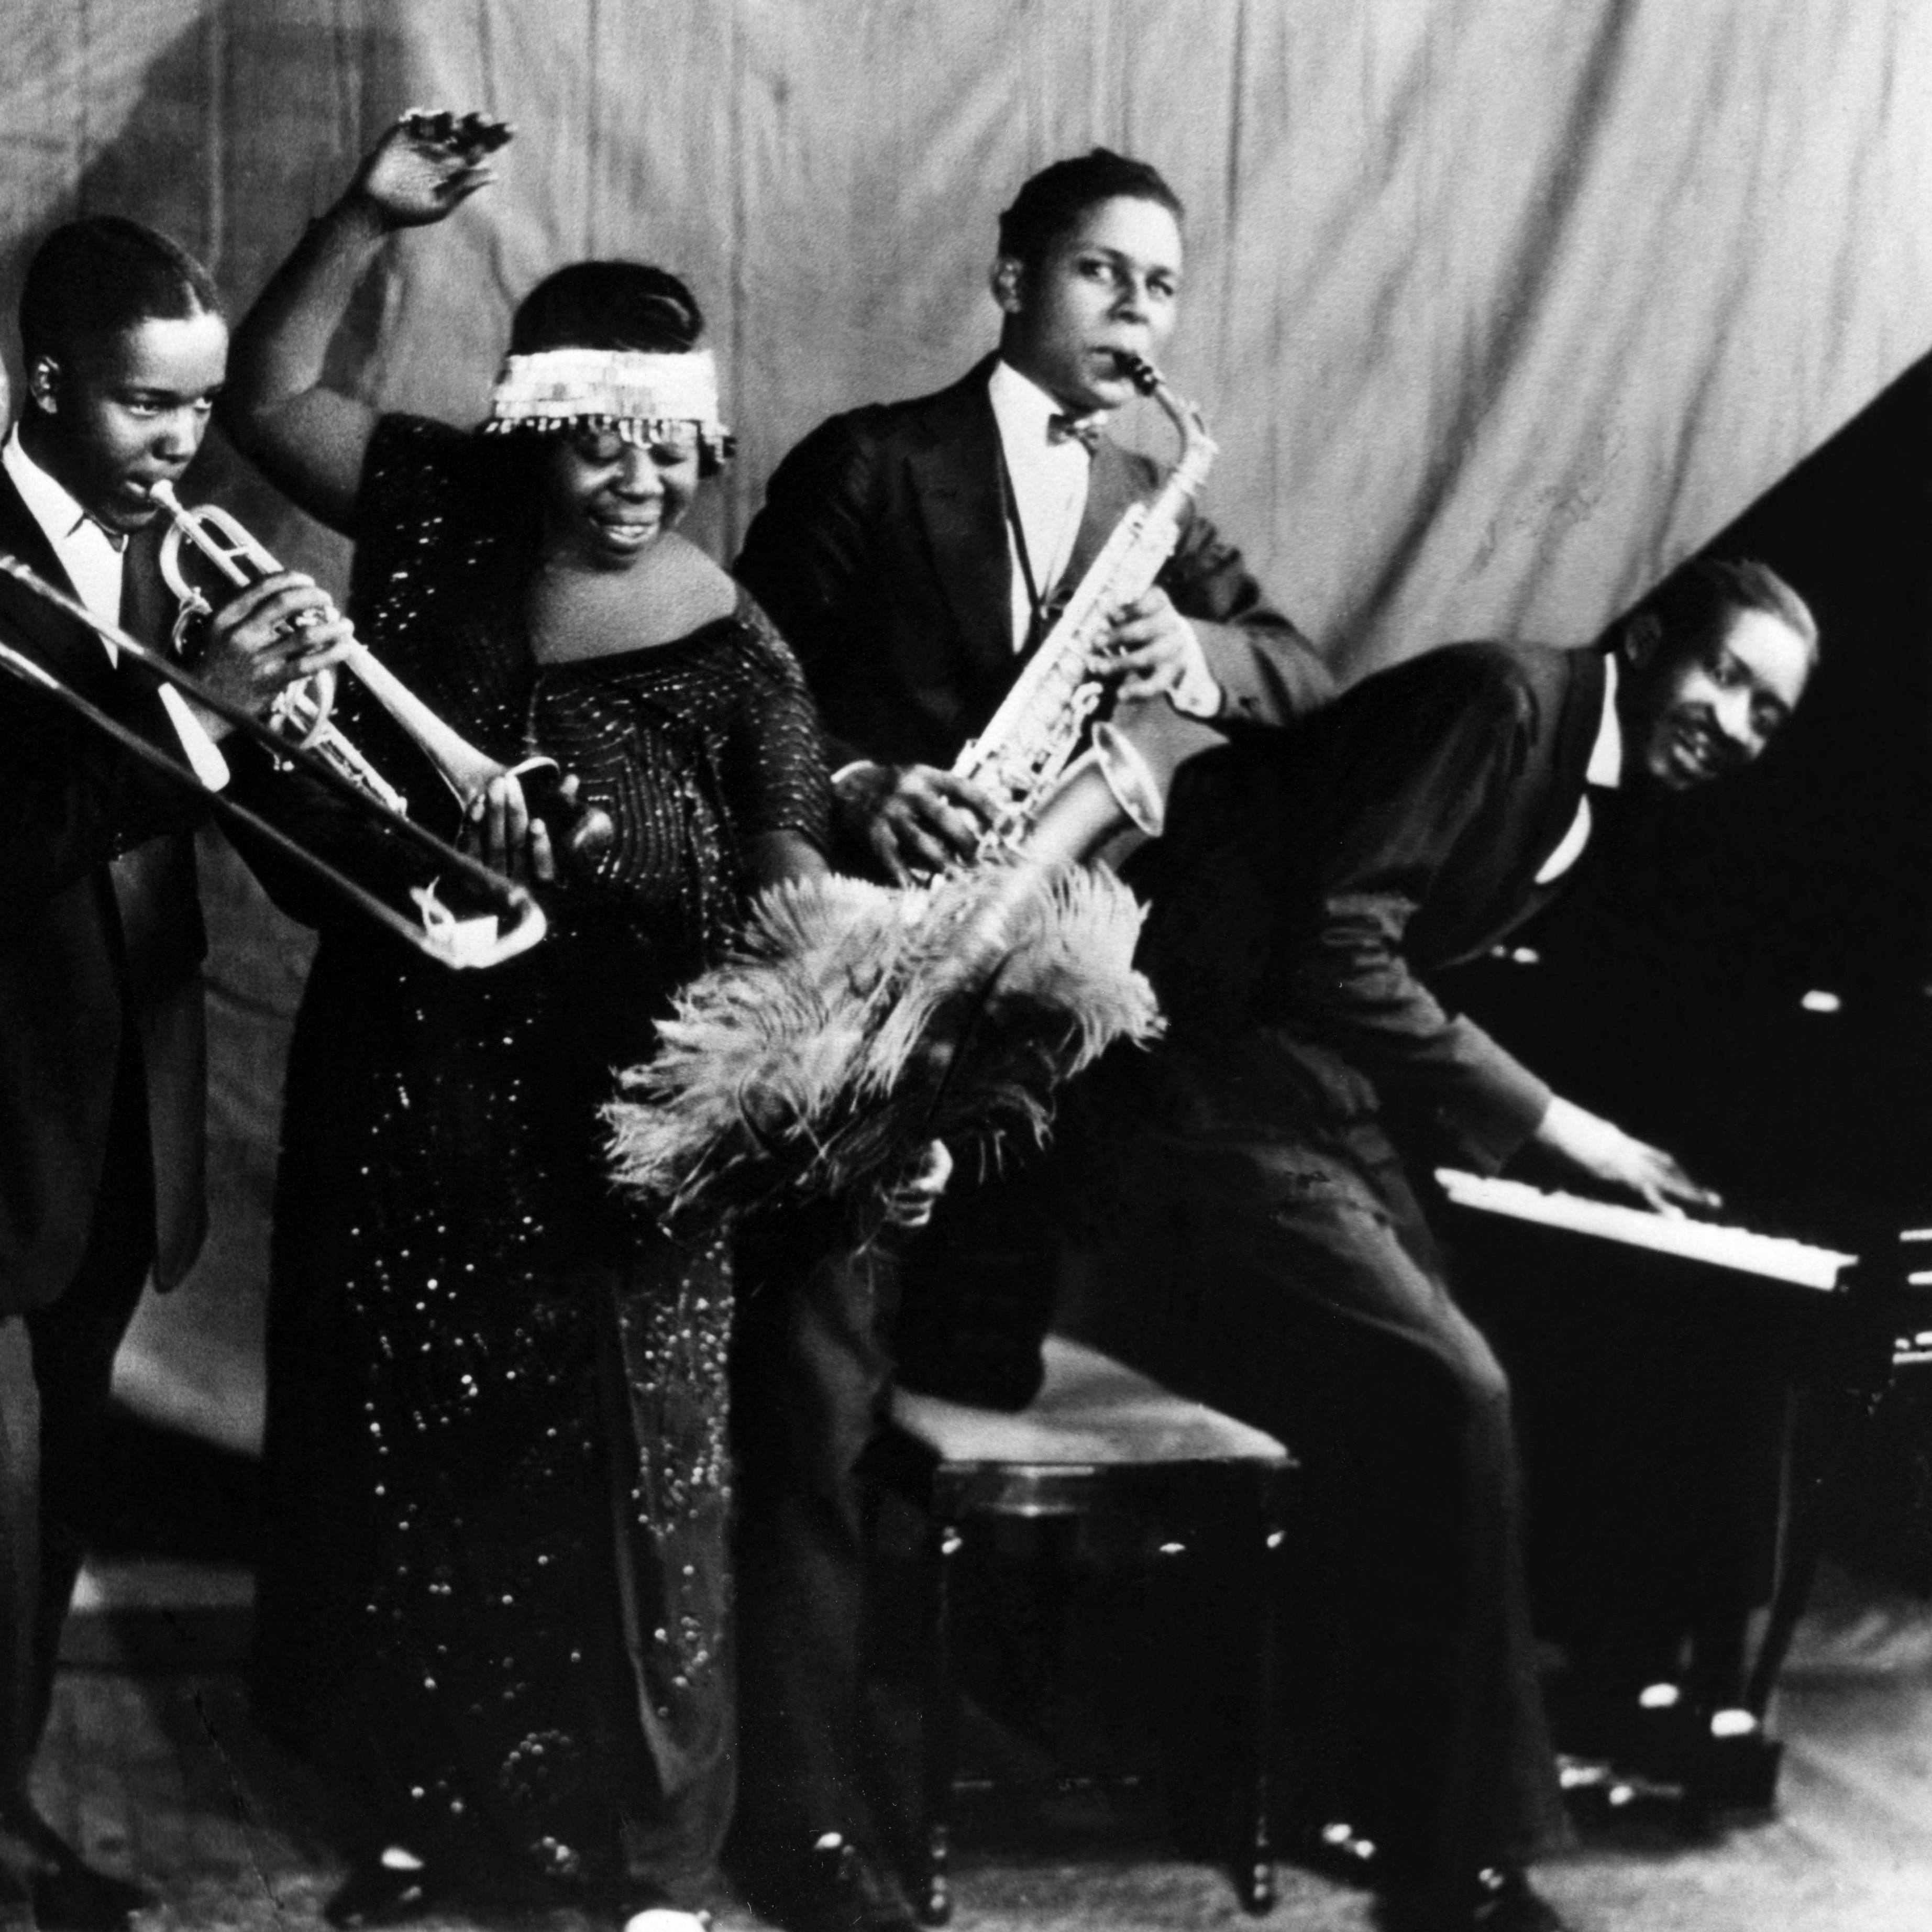 jazz history in 1920 Jazz music history in the early 1900s with emphasis on 1920s and 1930s pre big band era jazz.